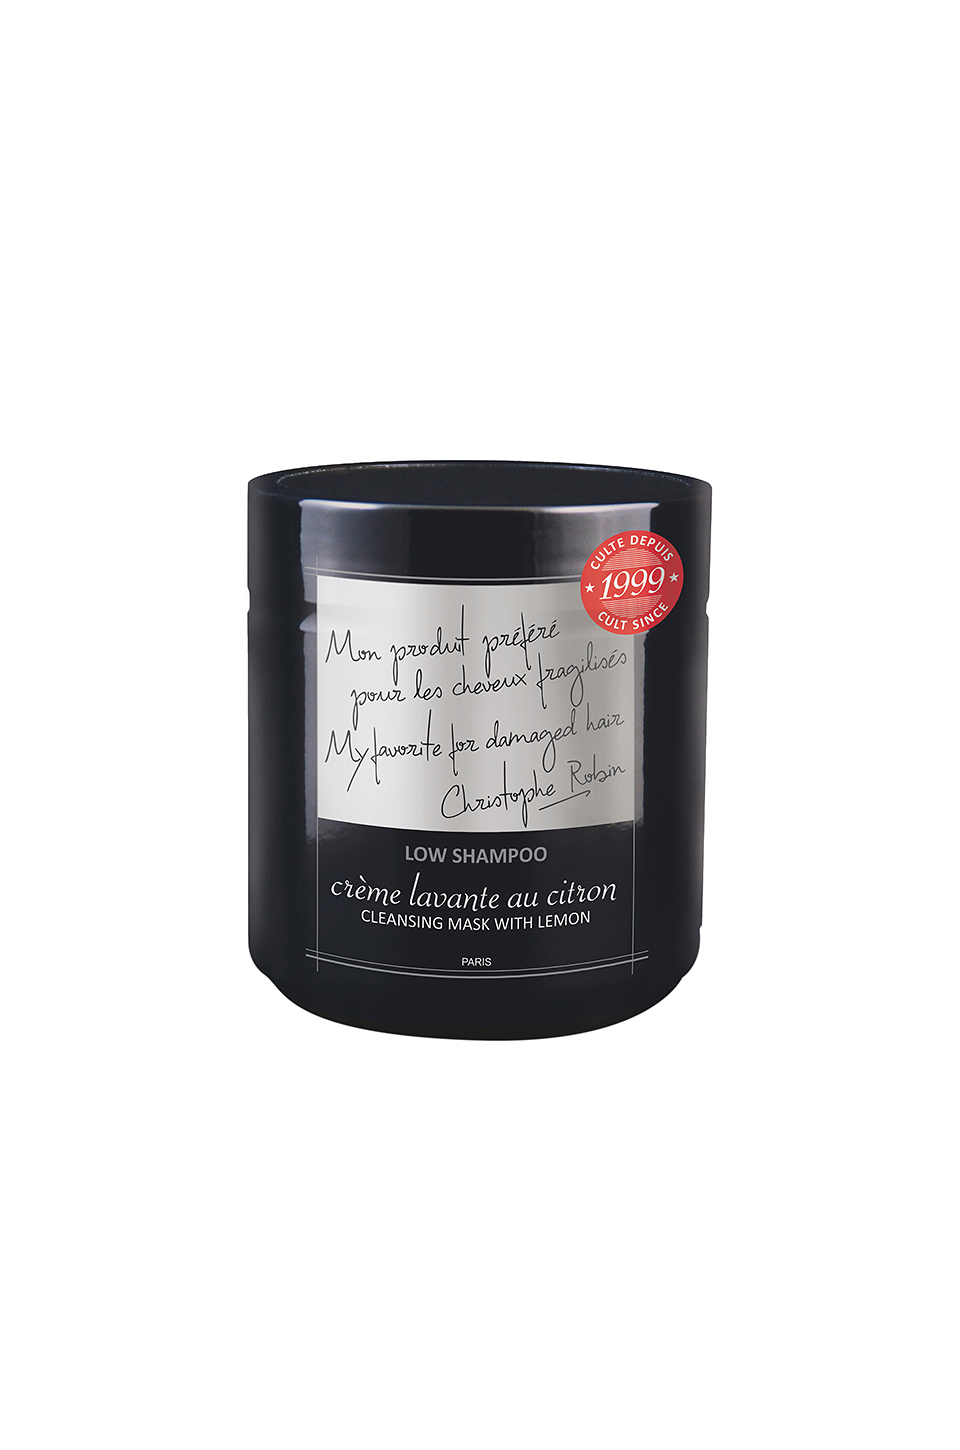 Christophe Robin Cleansing Mask with Lemon in